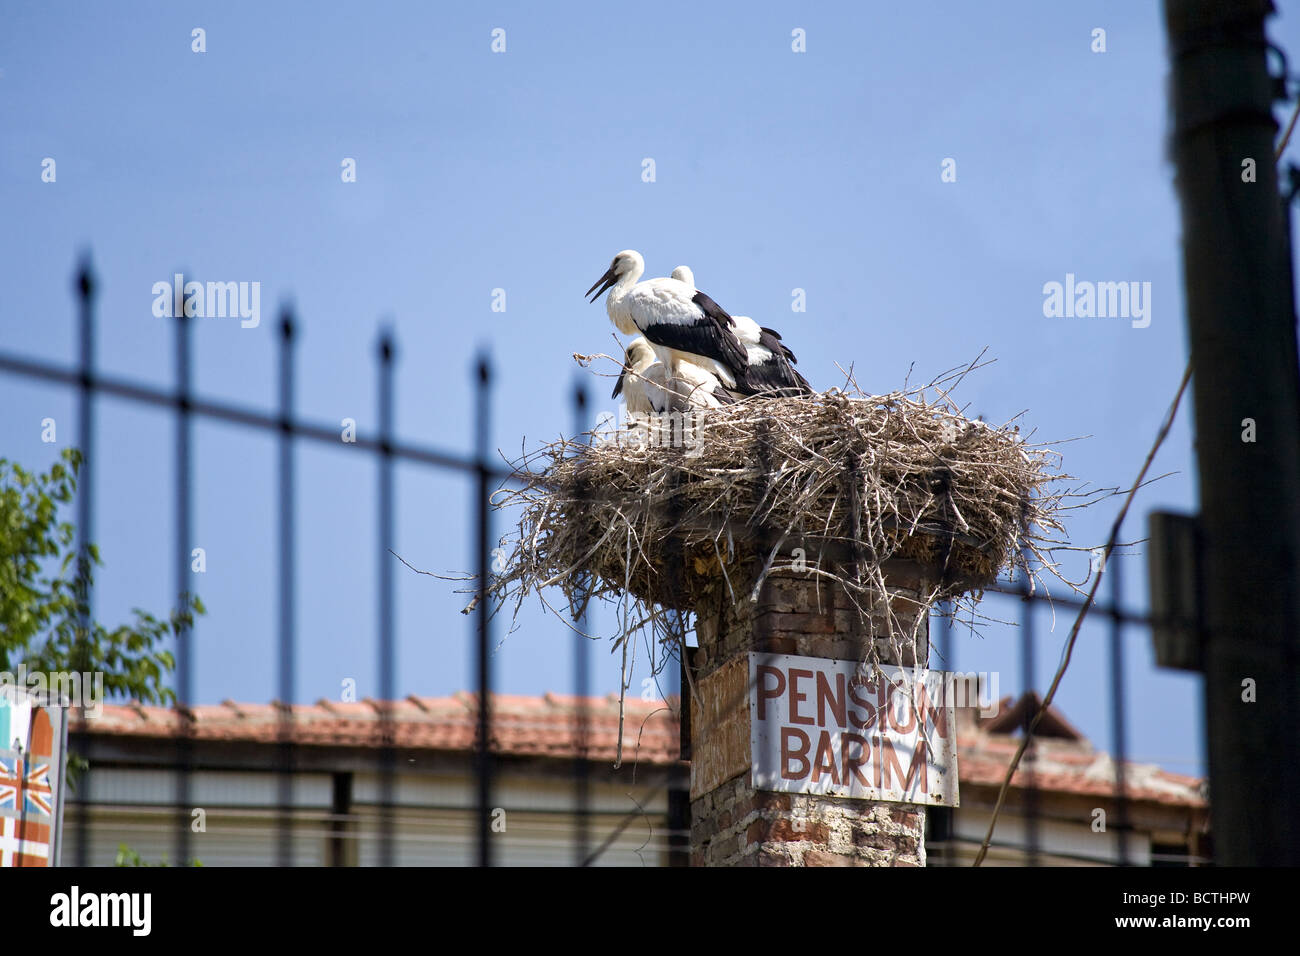 Storks nest on top of chimney at Pension Barim in Selcuk Ephesus Turkey. - Stock Image